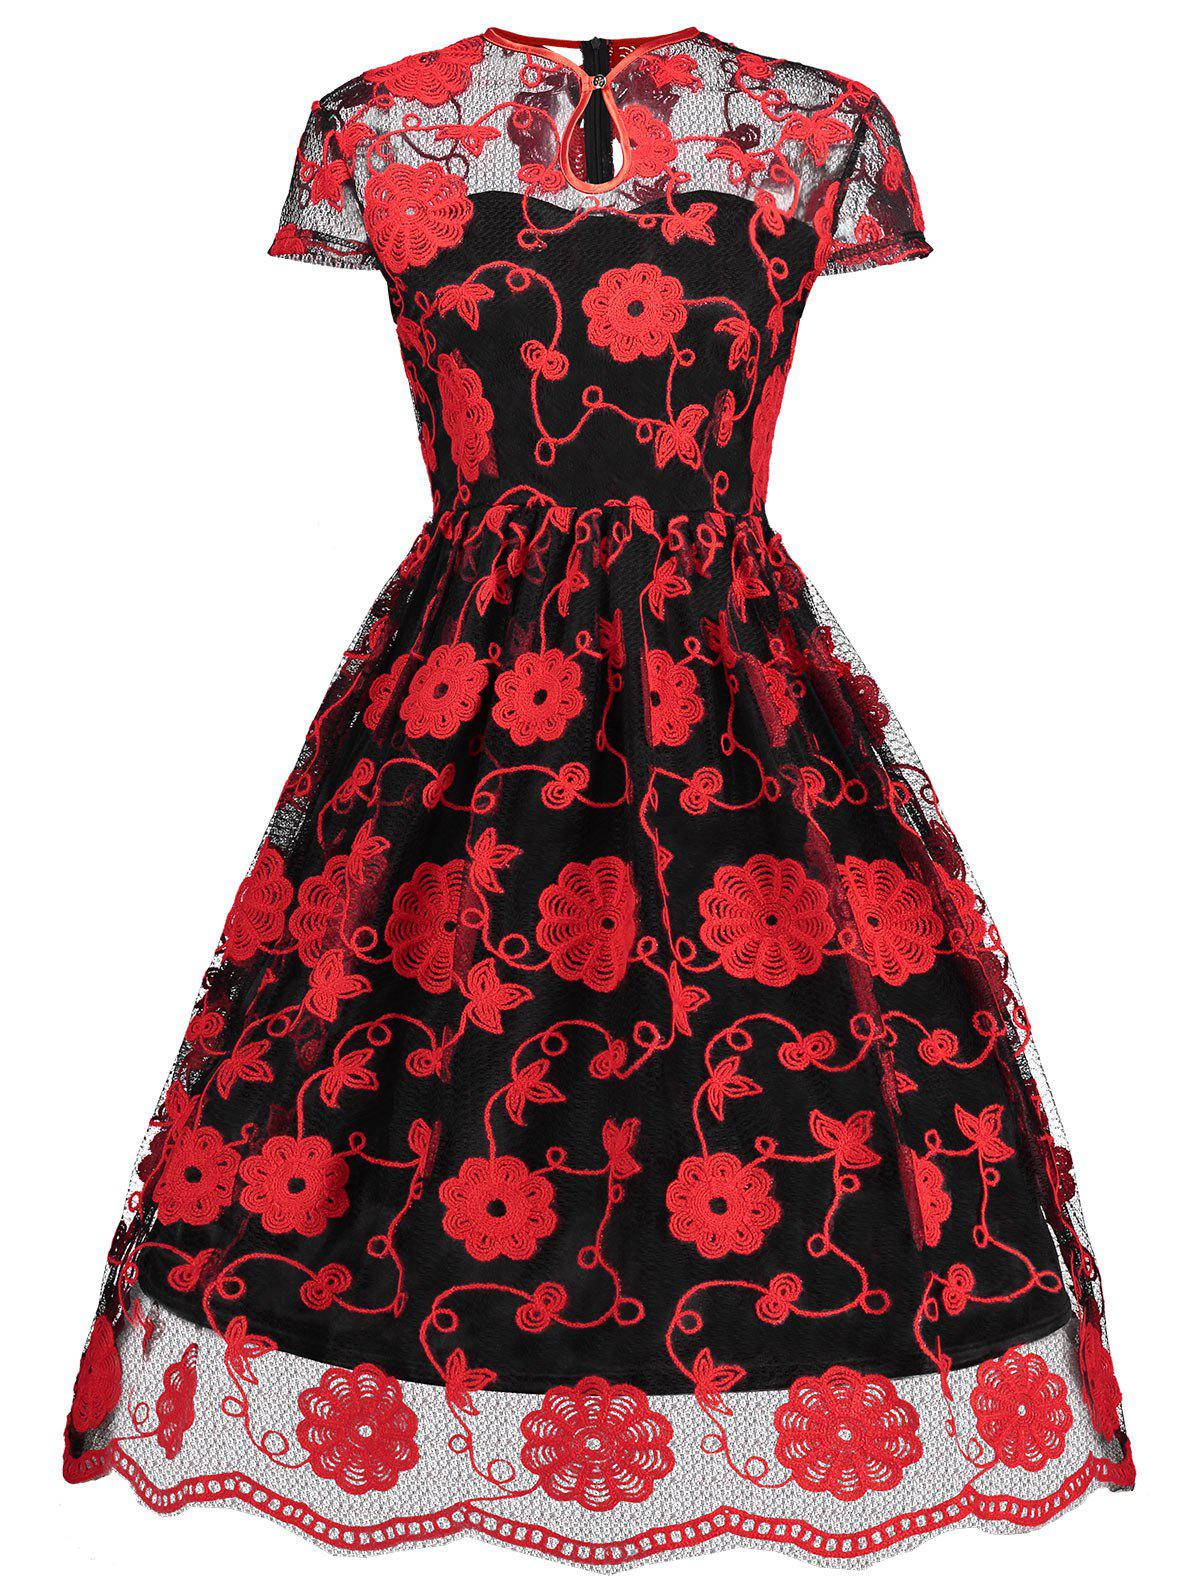 Keyhole Mesh Embroidered Vintage Dress - RED/BLACK S